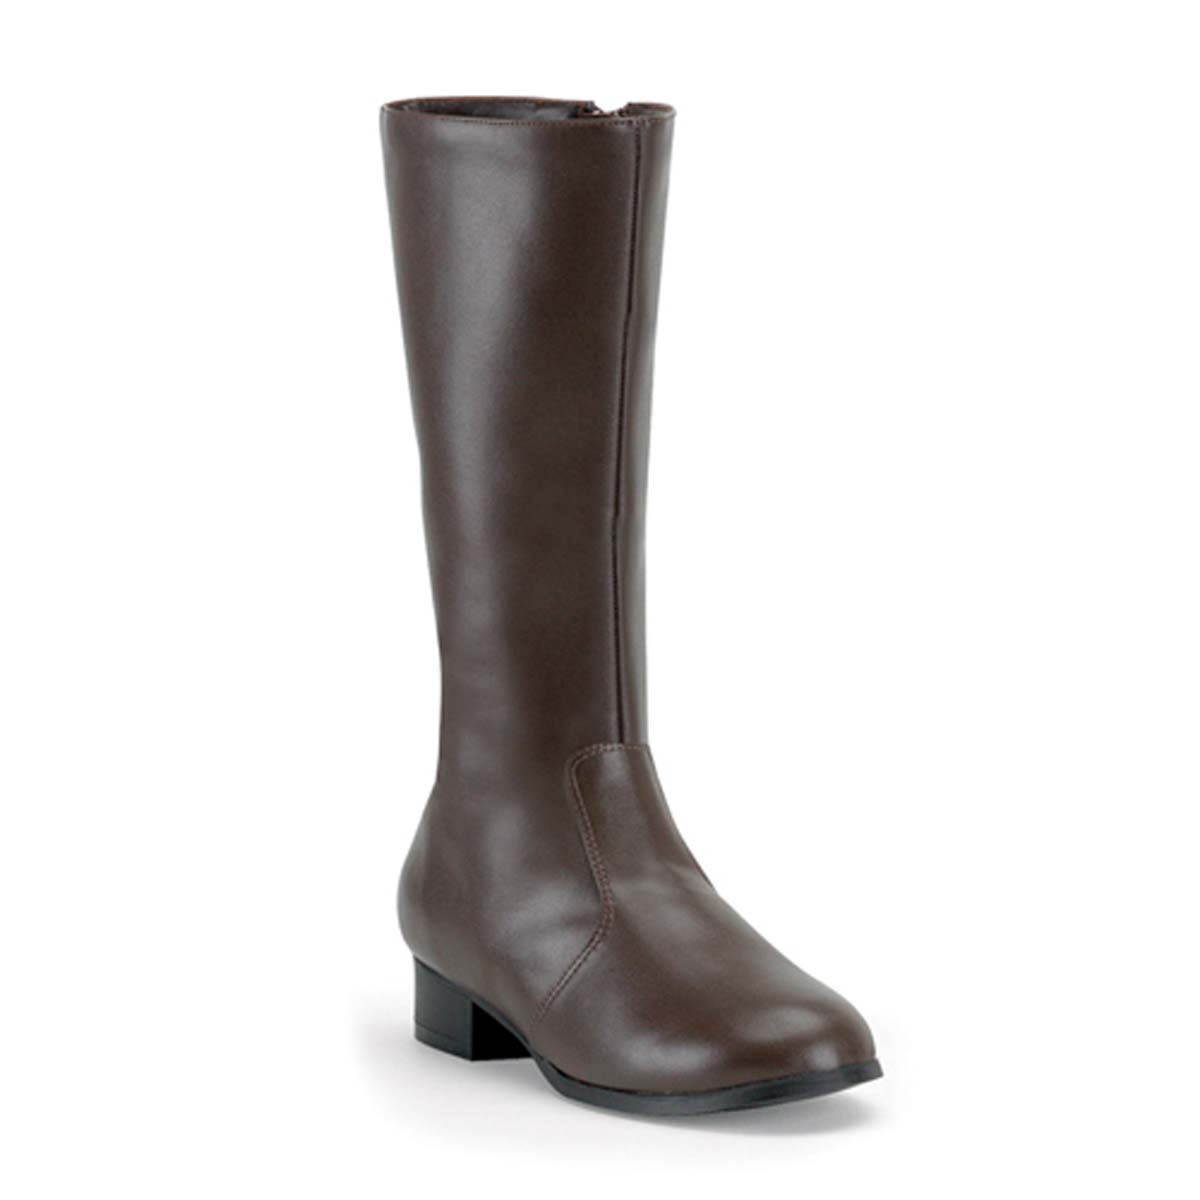 Funtasma Captain-180 - Brown Pu - CAPTAIN-180, CHILDREN BROWN BOOTBoots Children 1 Inch  HeelFit Guide: TRUE TO SIZE in Knee High Boots - Single Sole